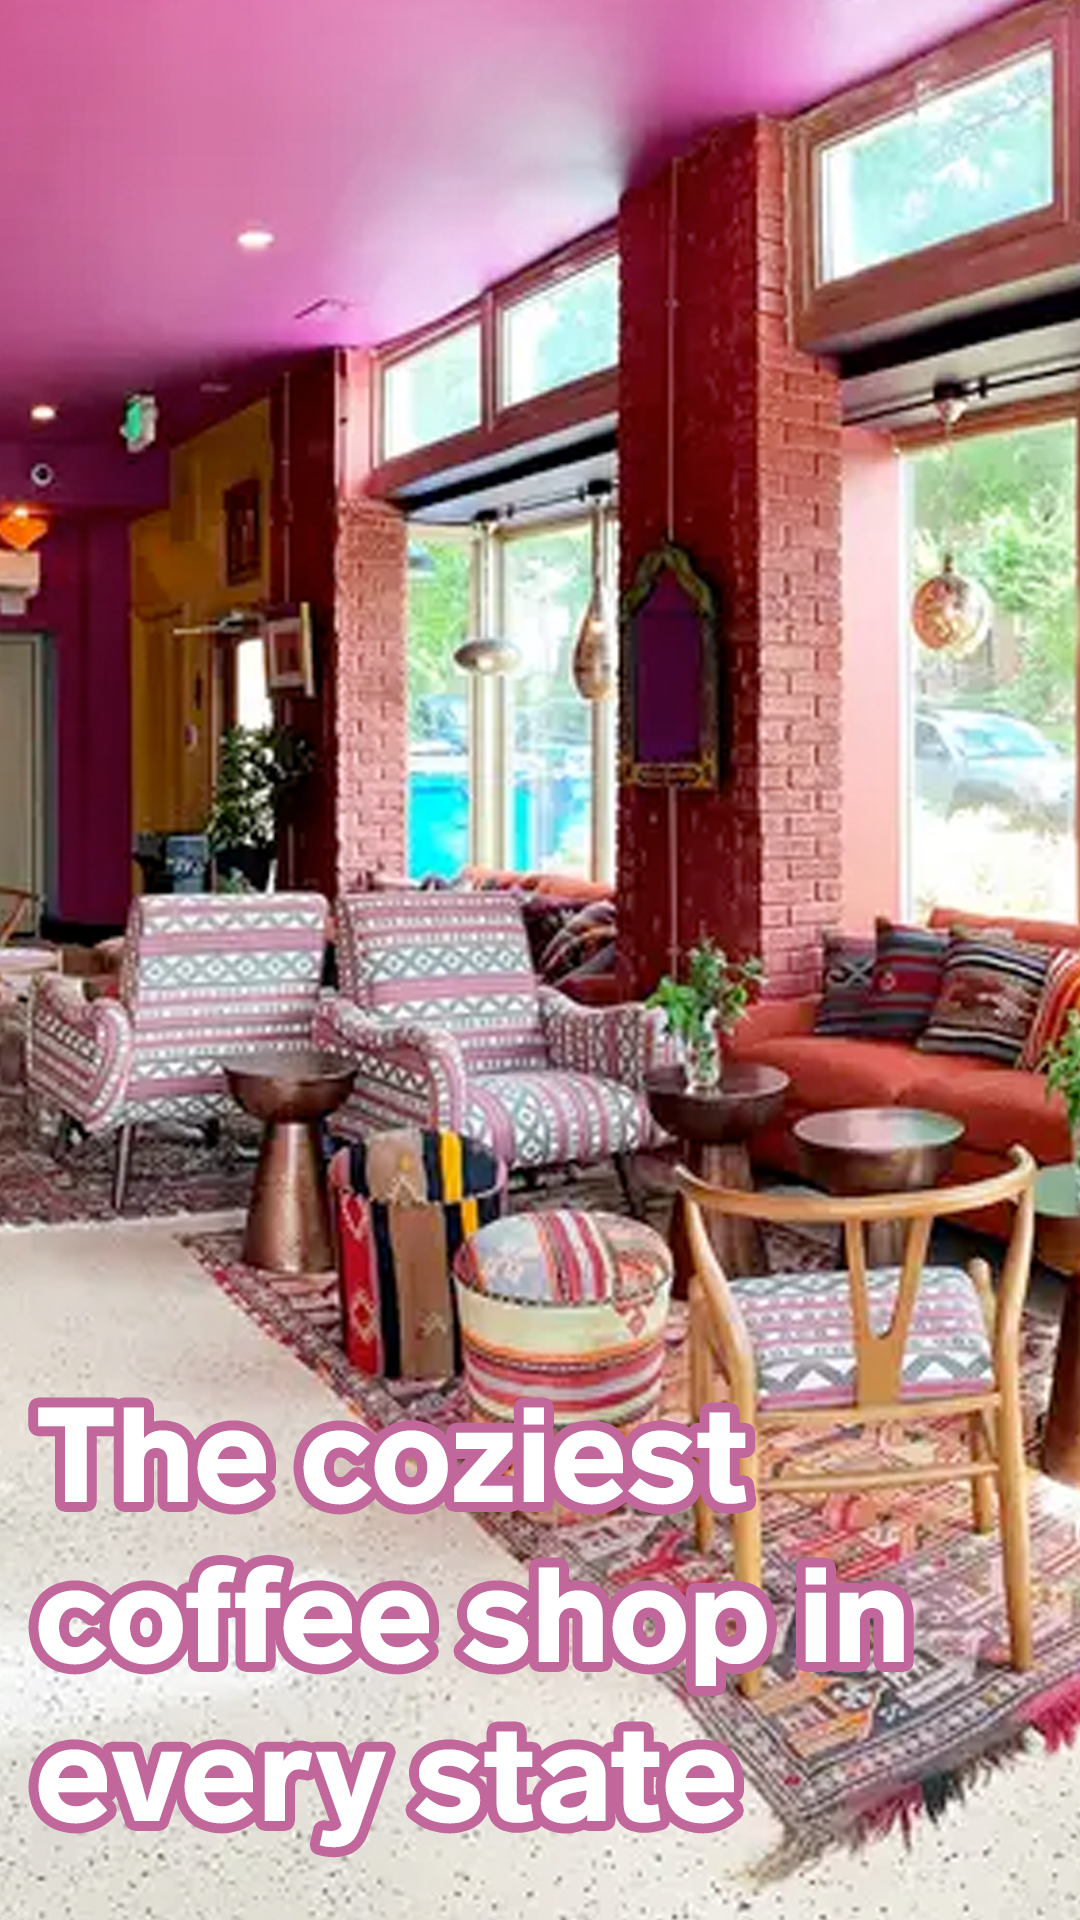 The coziest coffee shop in every state in 2020 Cozy